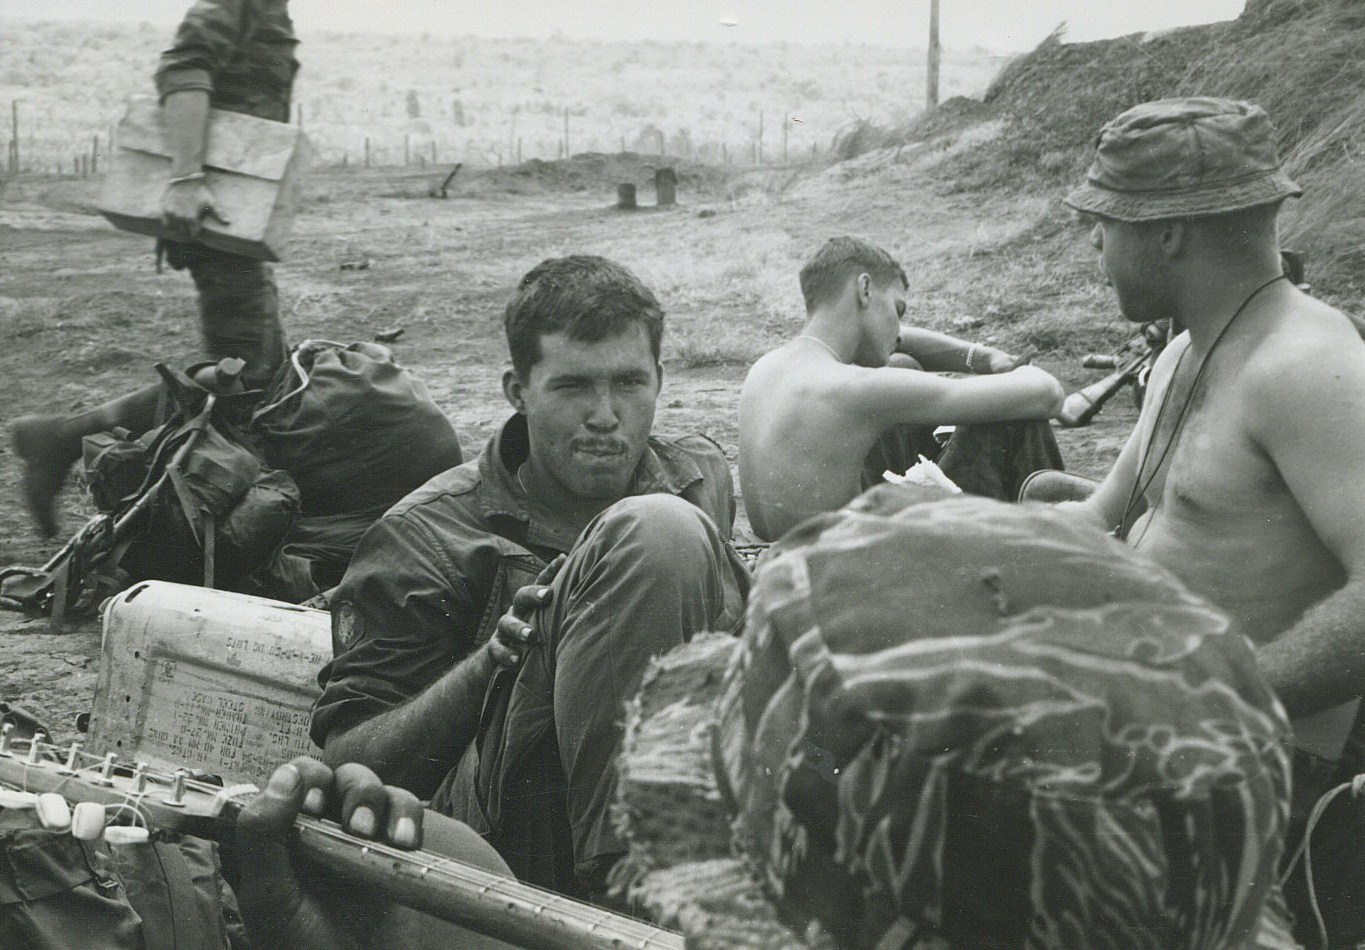 Mark Miller, Steve Northington at Plei Mei special forces A camp - RVN 1967